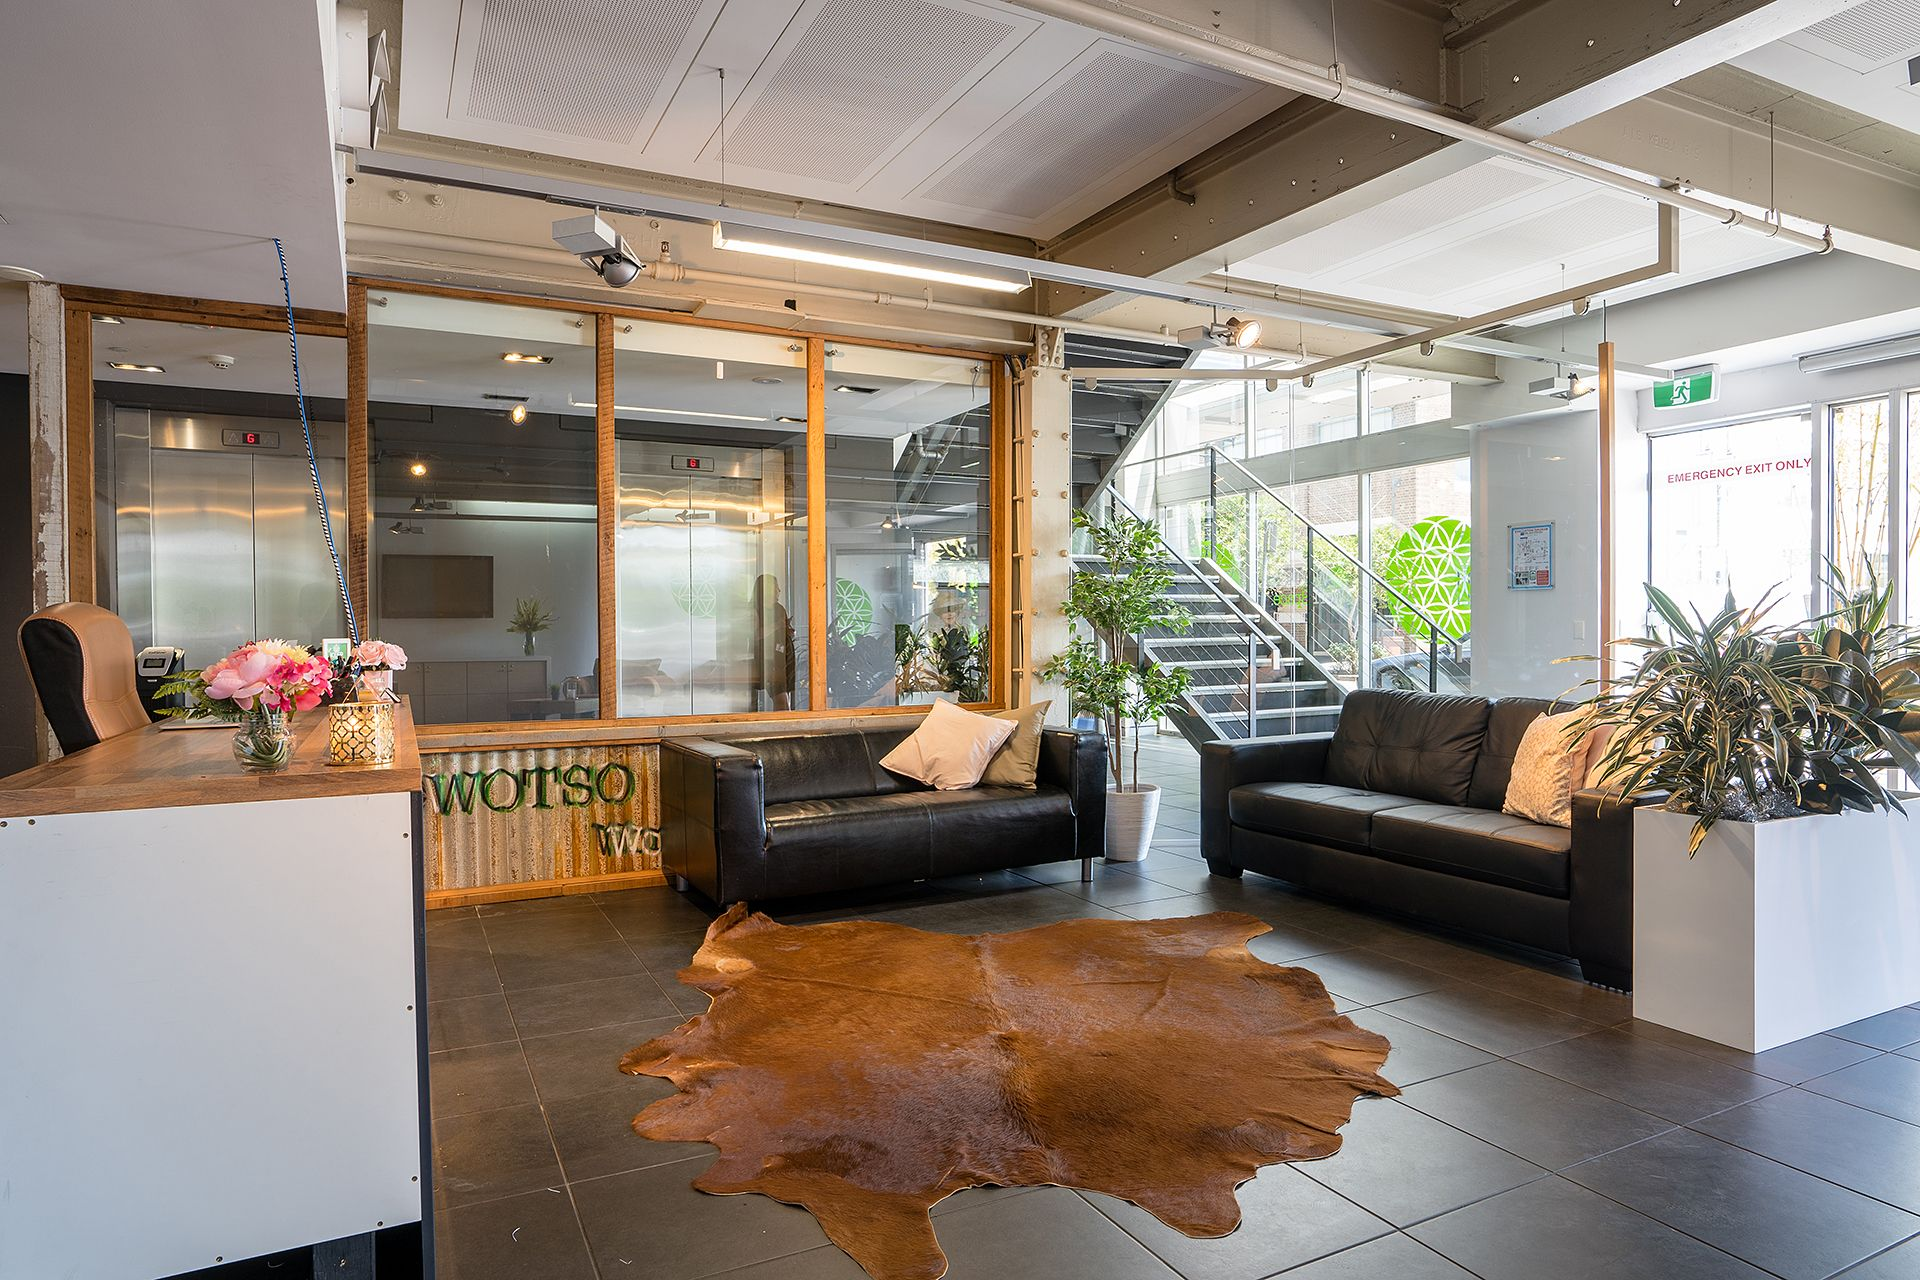 WOTSO WorkSpace  - North Strathfield, Sydney